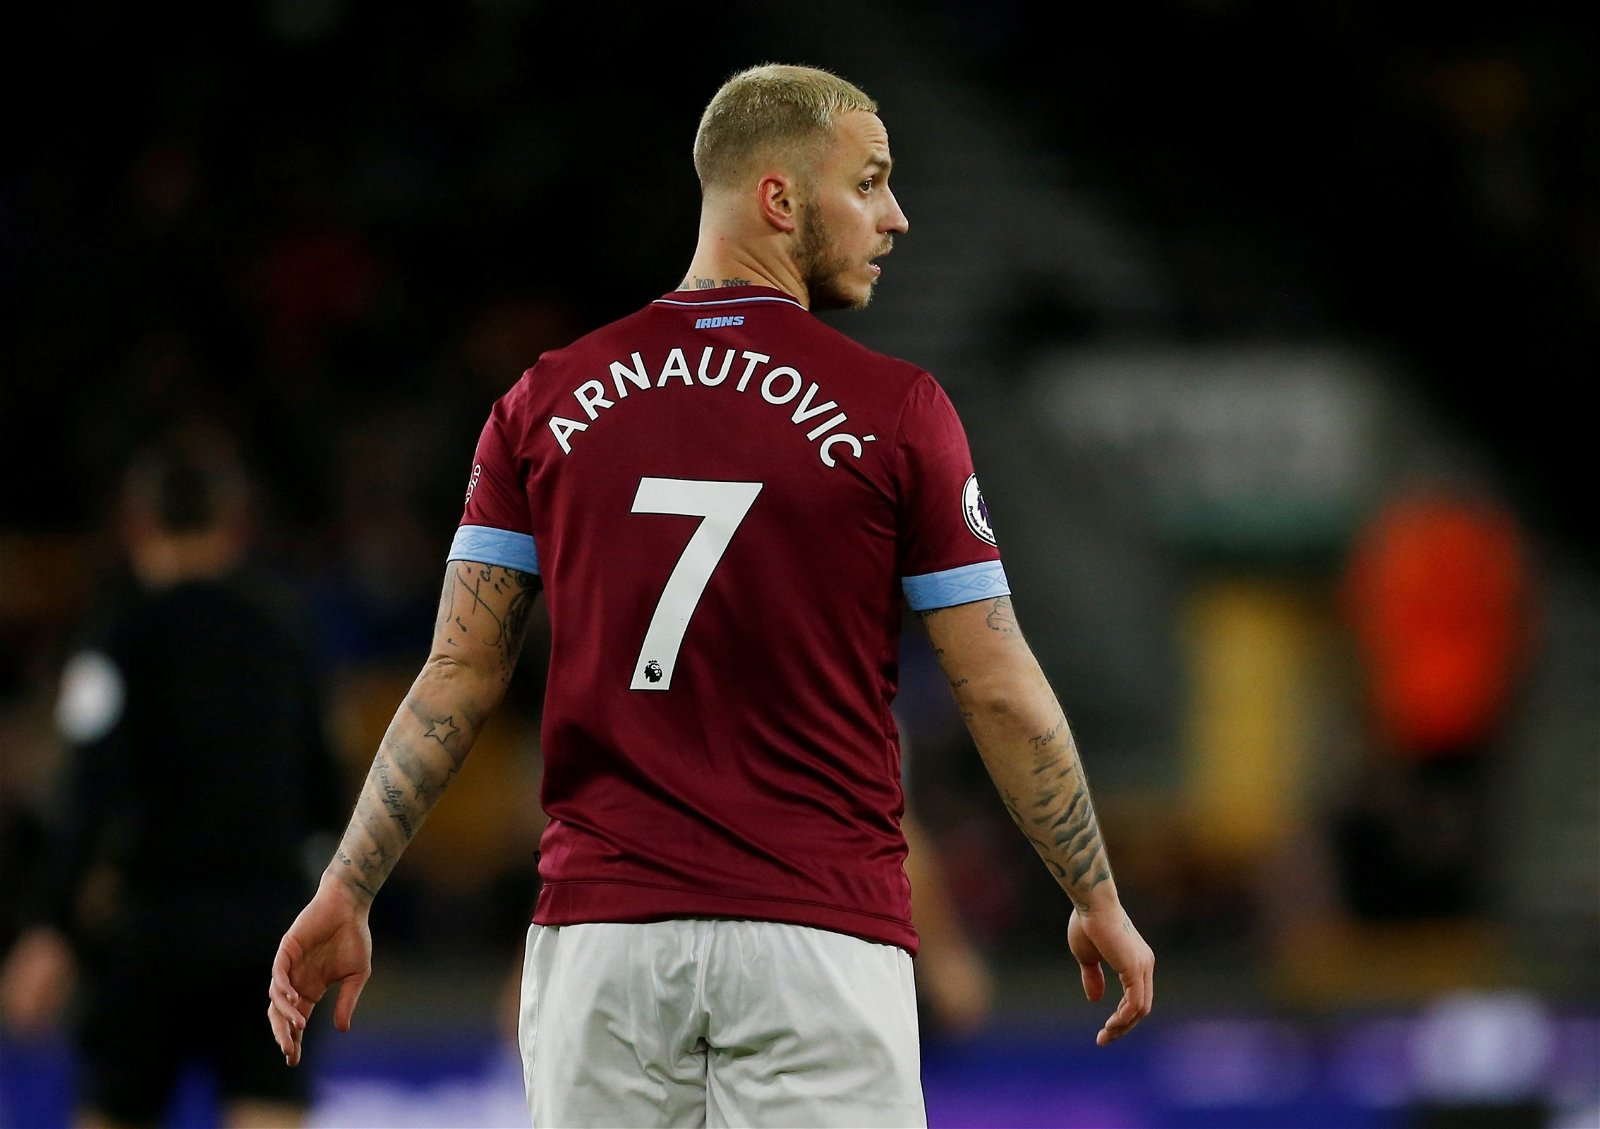 Marko Arnautovic turns his back